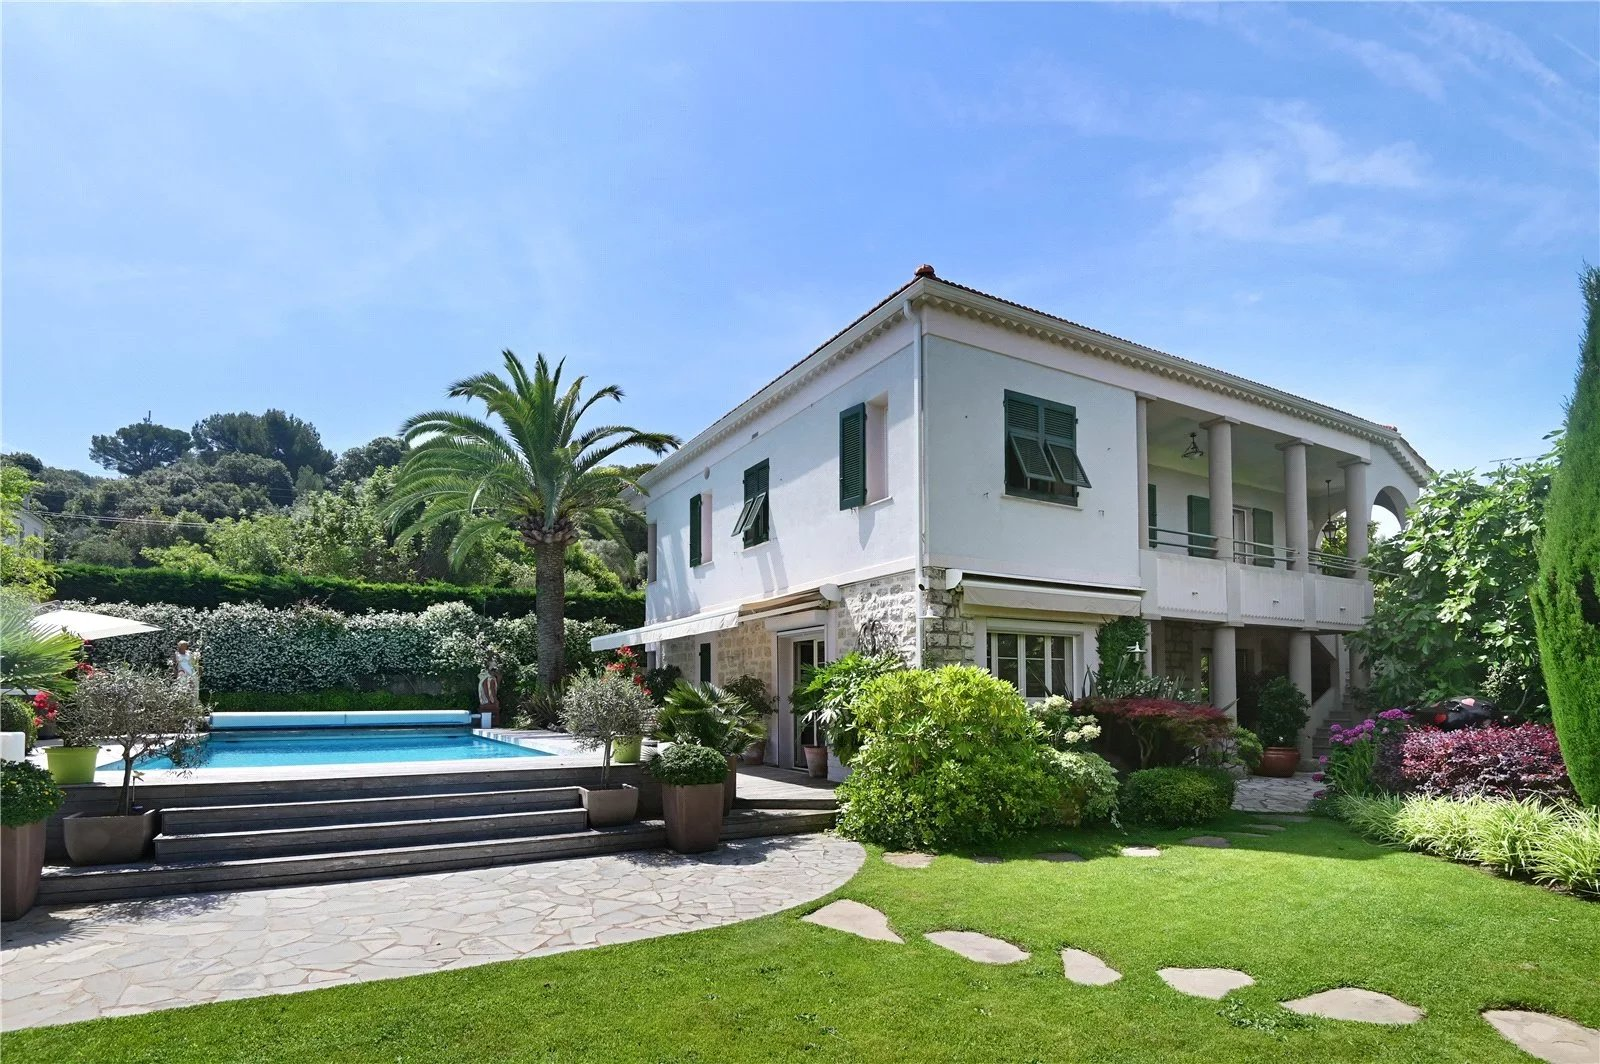 Ideally located for the beaches, charming five bedroom villa with separate studio, pool, Jacuzzi an